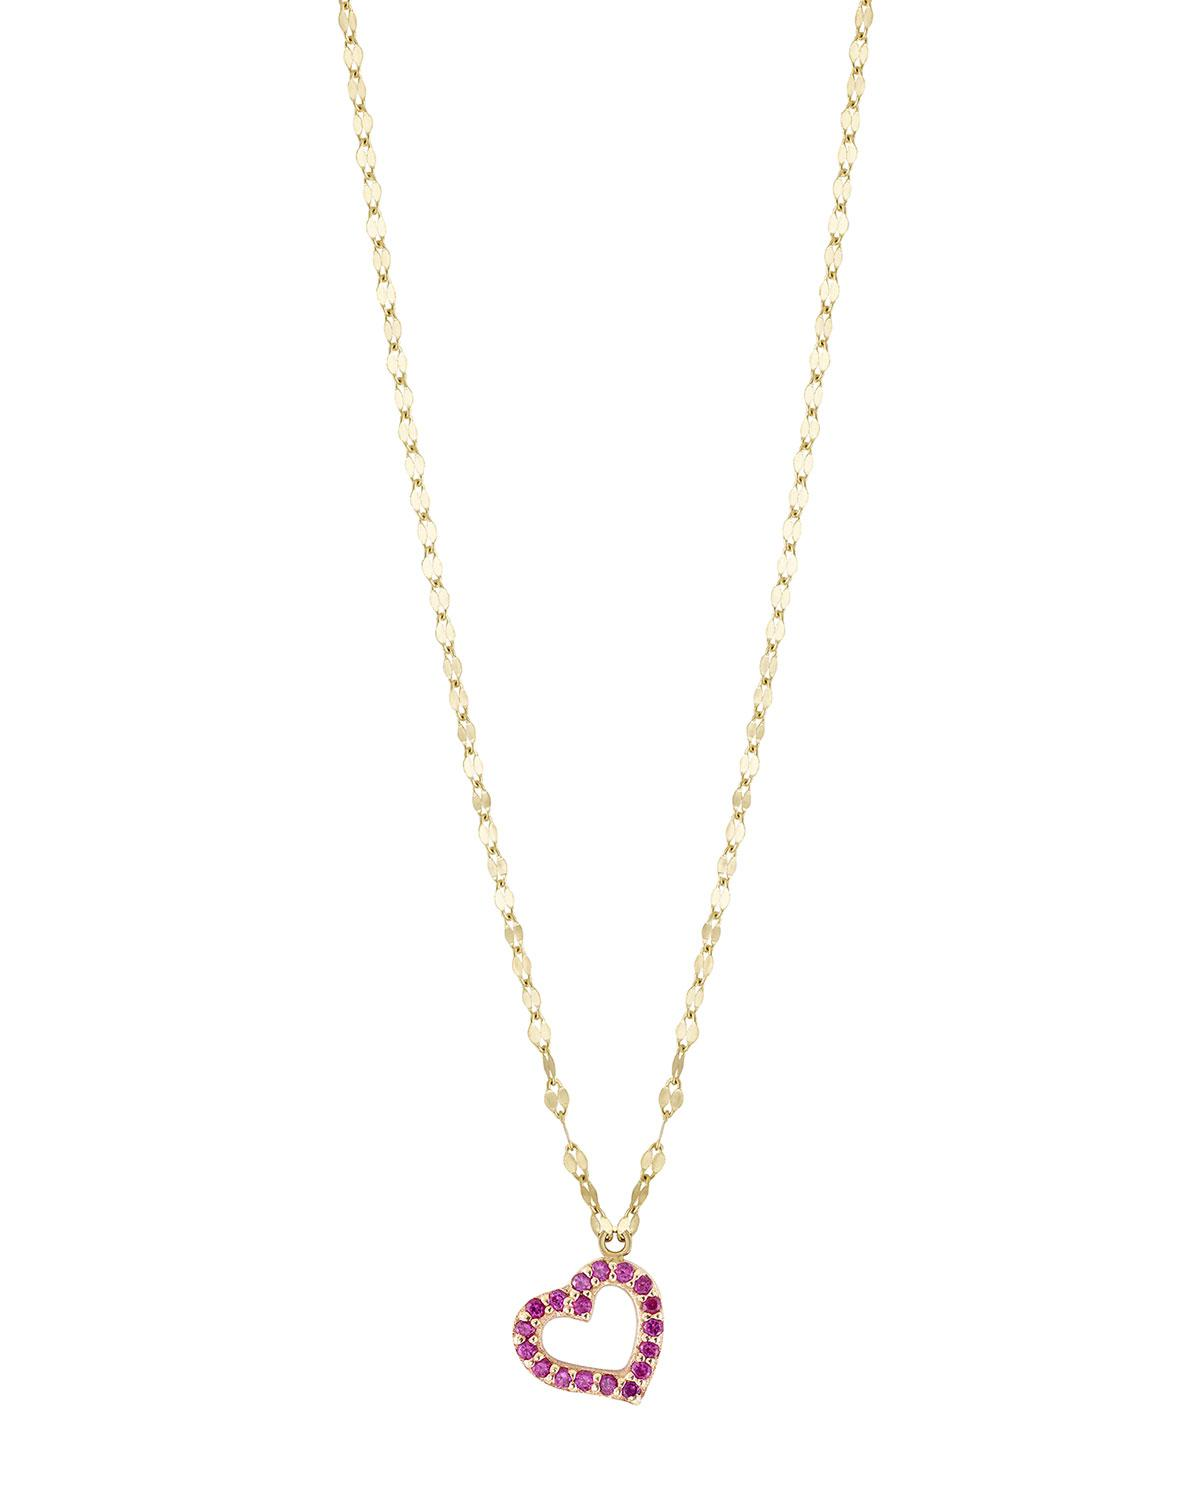 Lana Jewelry 14k Large Heart Pendant Necklace w/ Pink Sapphire 0jUQWTWw